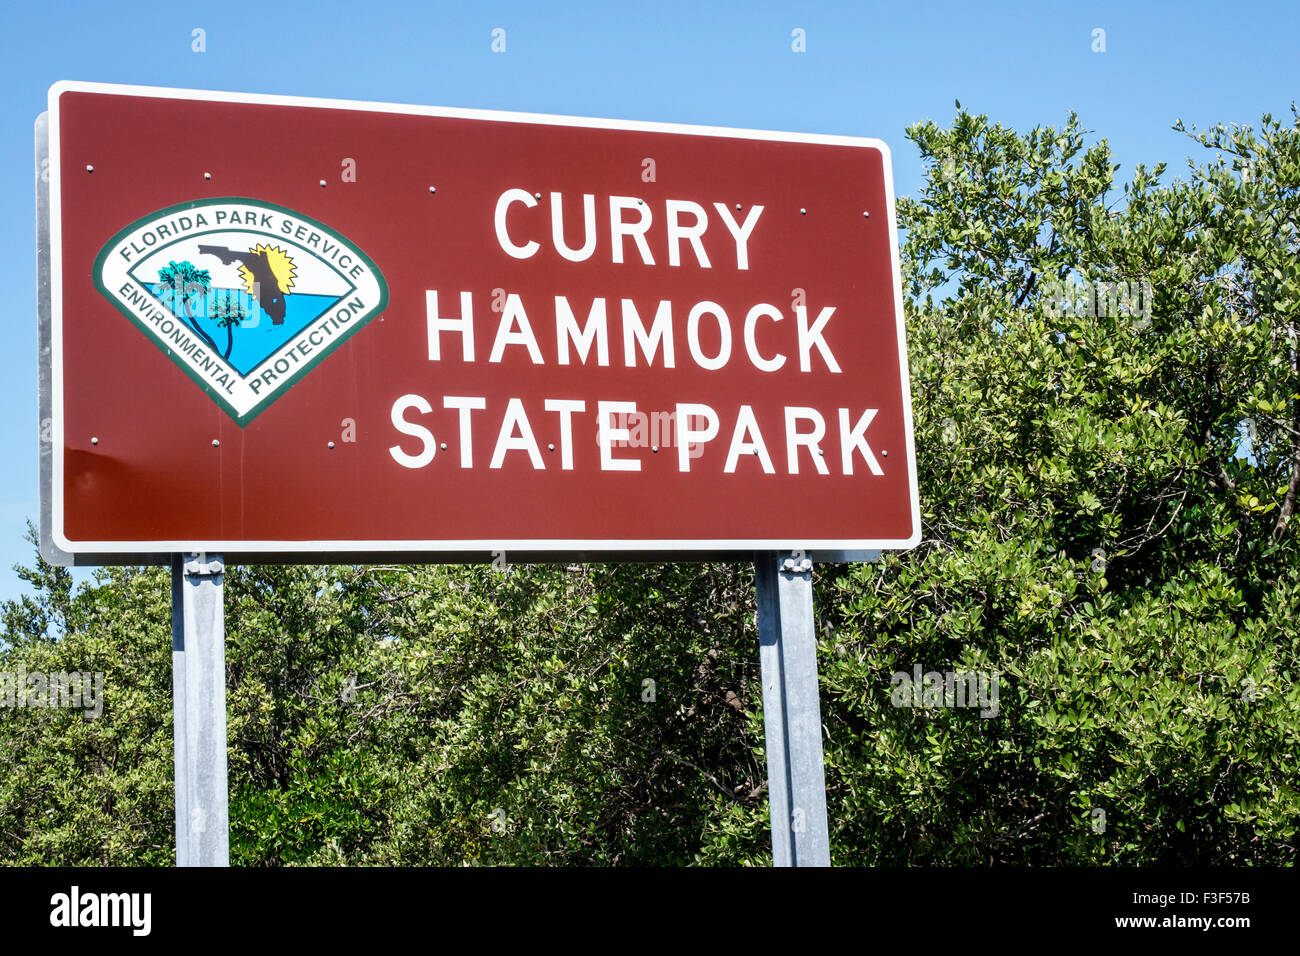 florida keys marathon curry hammock state park entrance sign florida keys marathon curry hammock state park entrance sign stock      rh   alamy